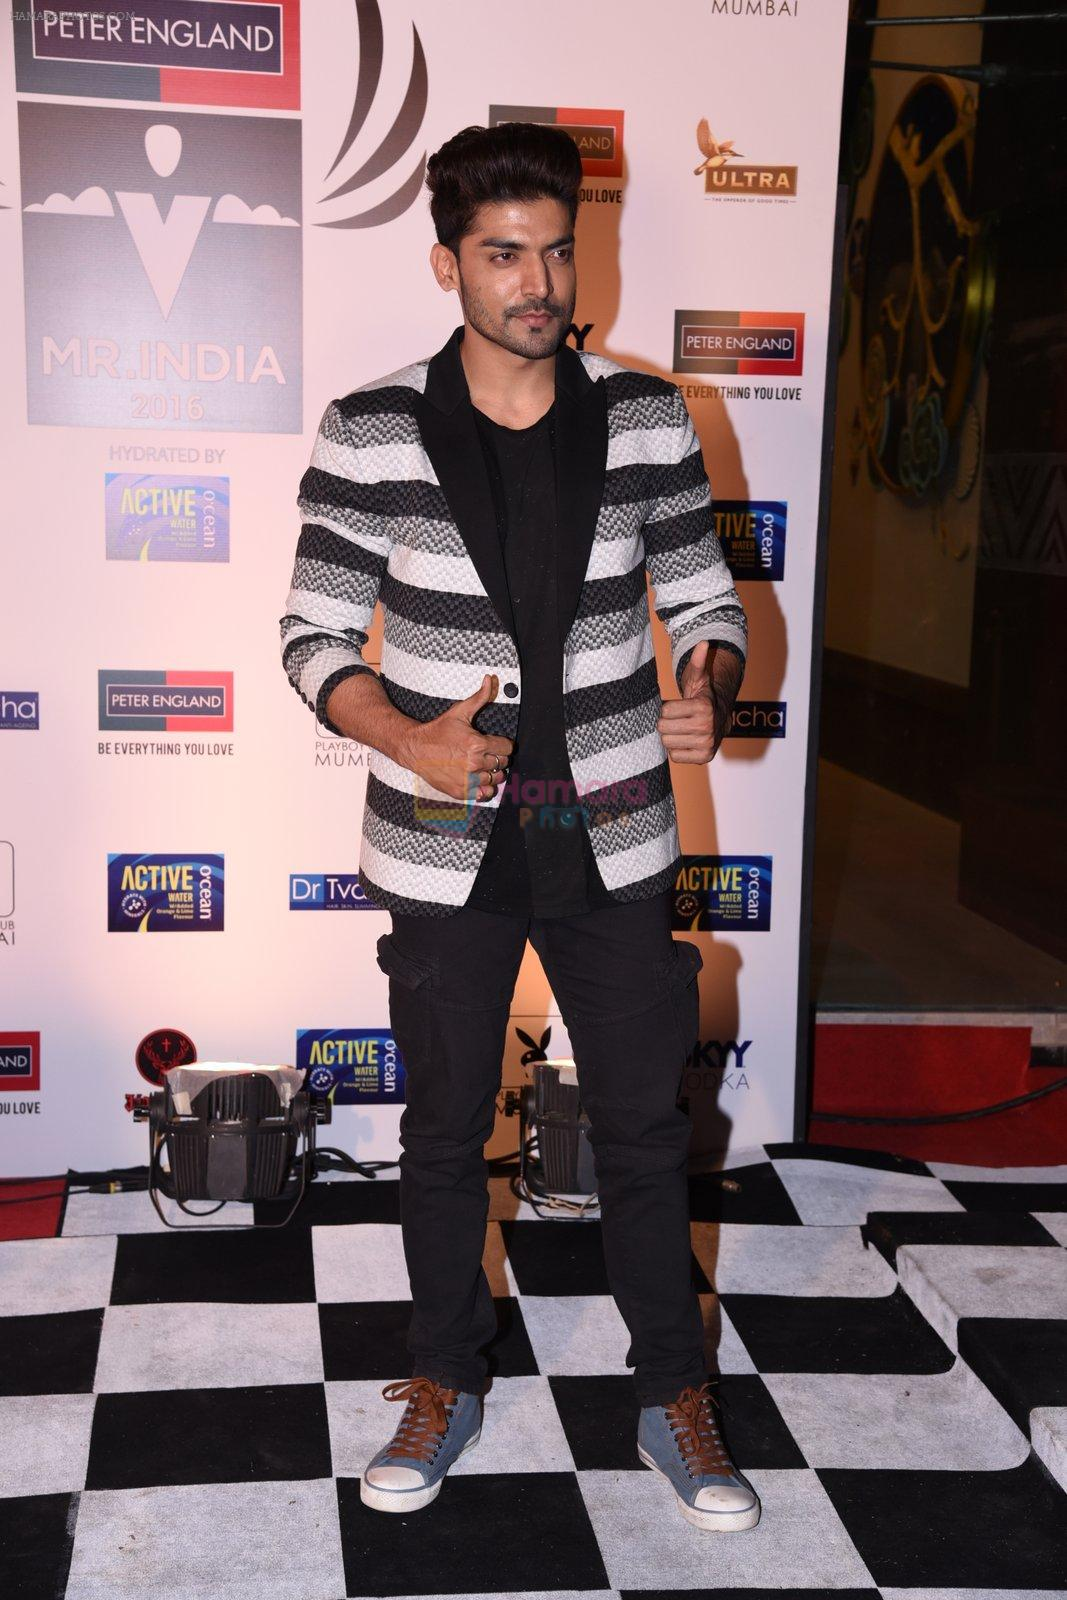 Gurmeet Choudhary at Peter England Mr India on 24th Nov 2016